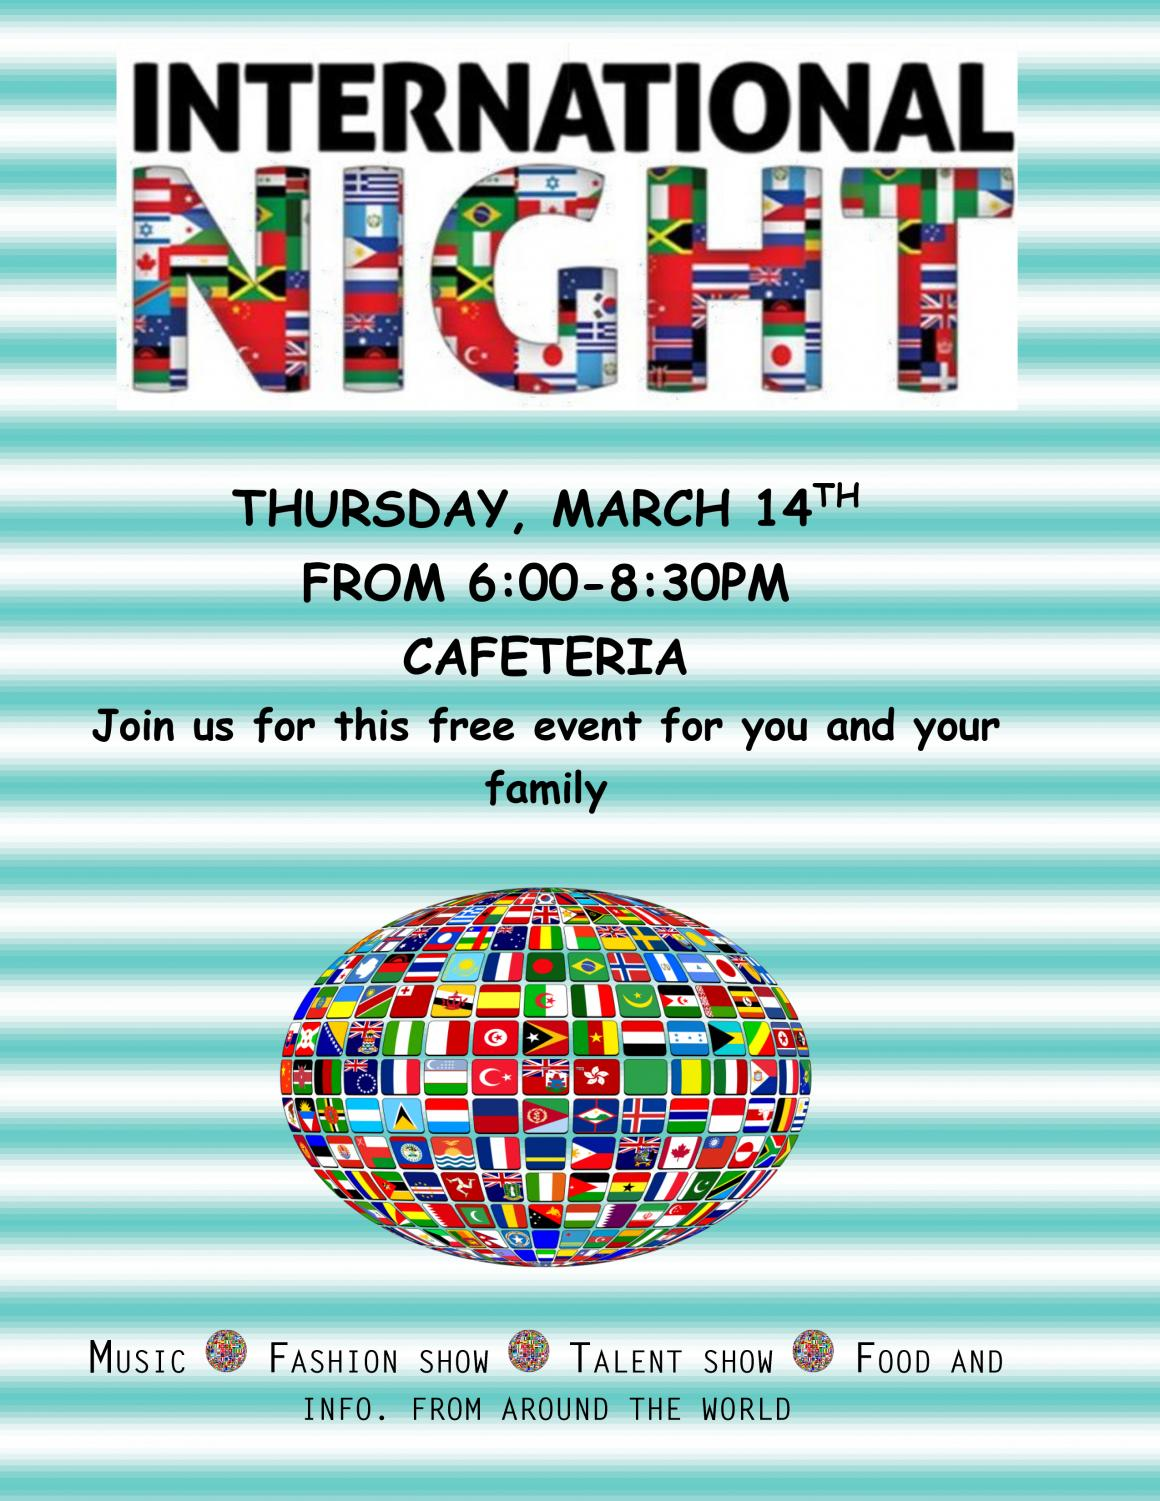 Watkins Mill's annual International Night will be held March 14 from 6pm until 8:30pm in the cafeteria.